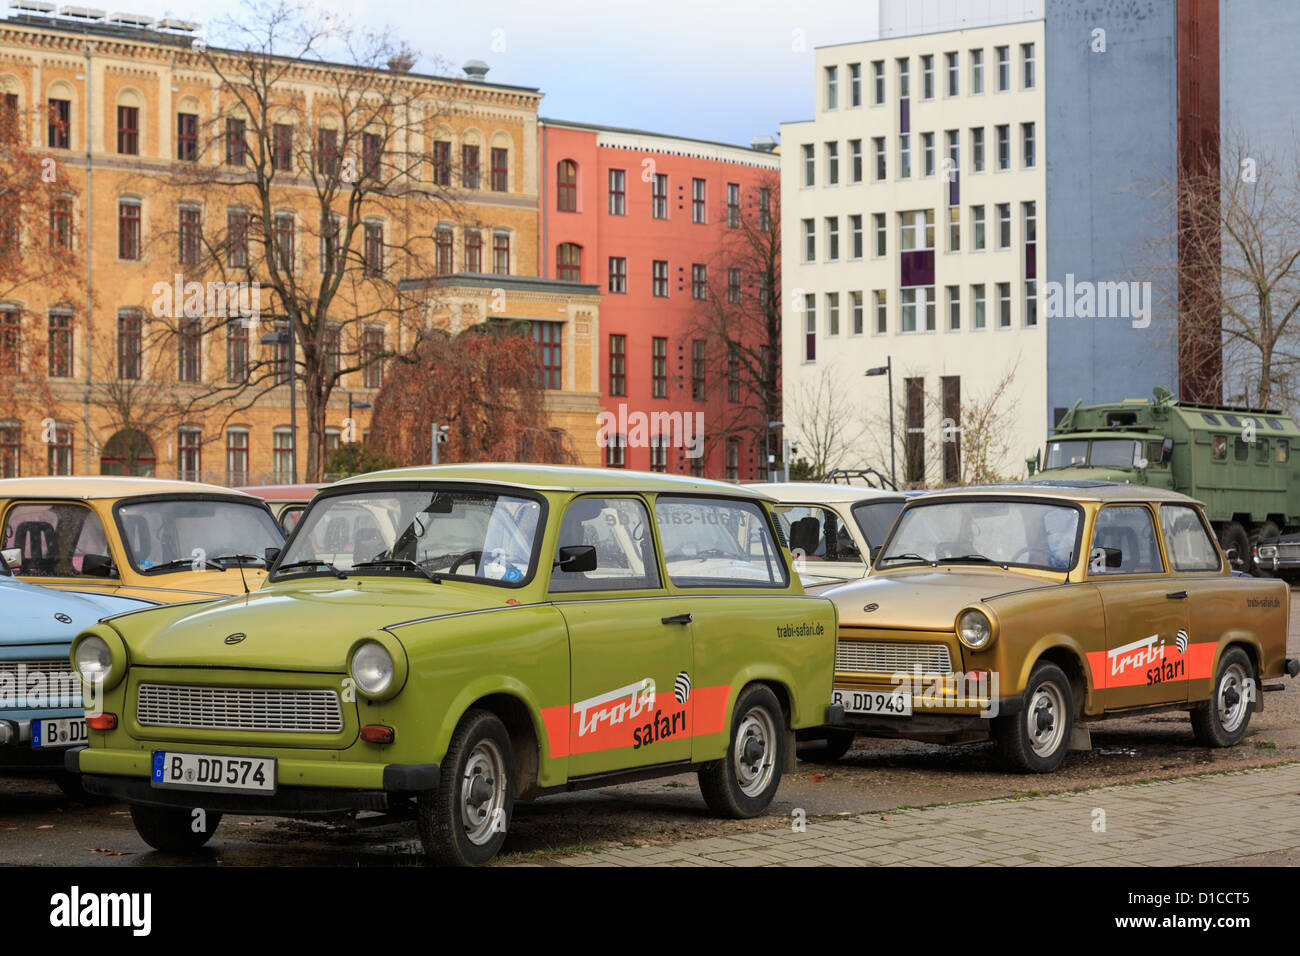 Old Trabi safari Trabant cars used for city sightseeing tours in ...